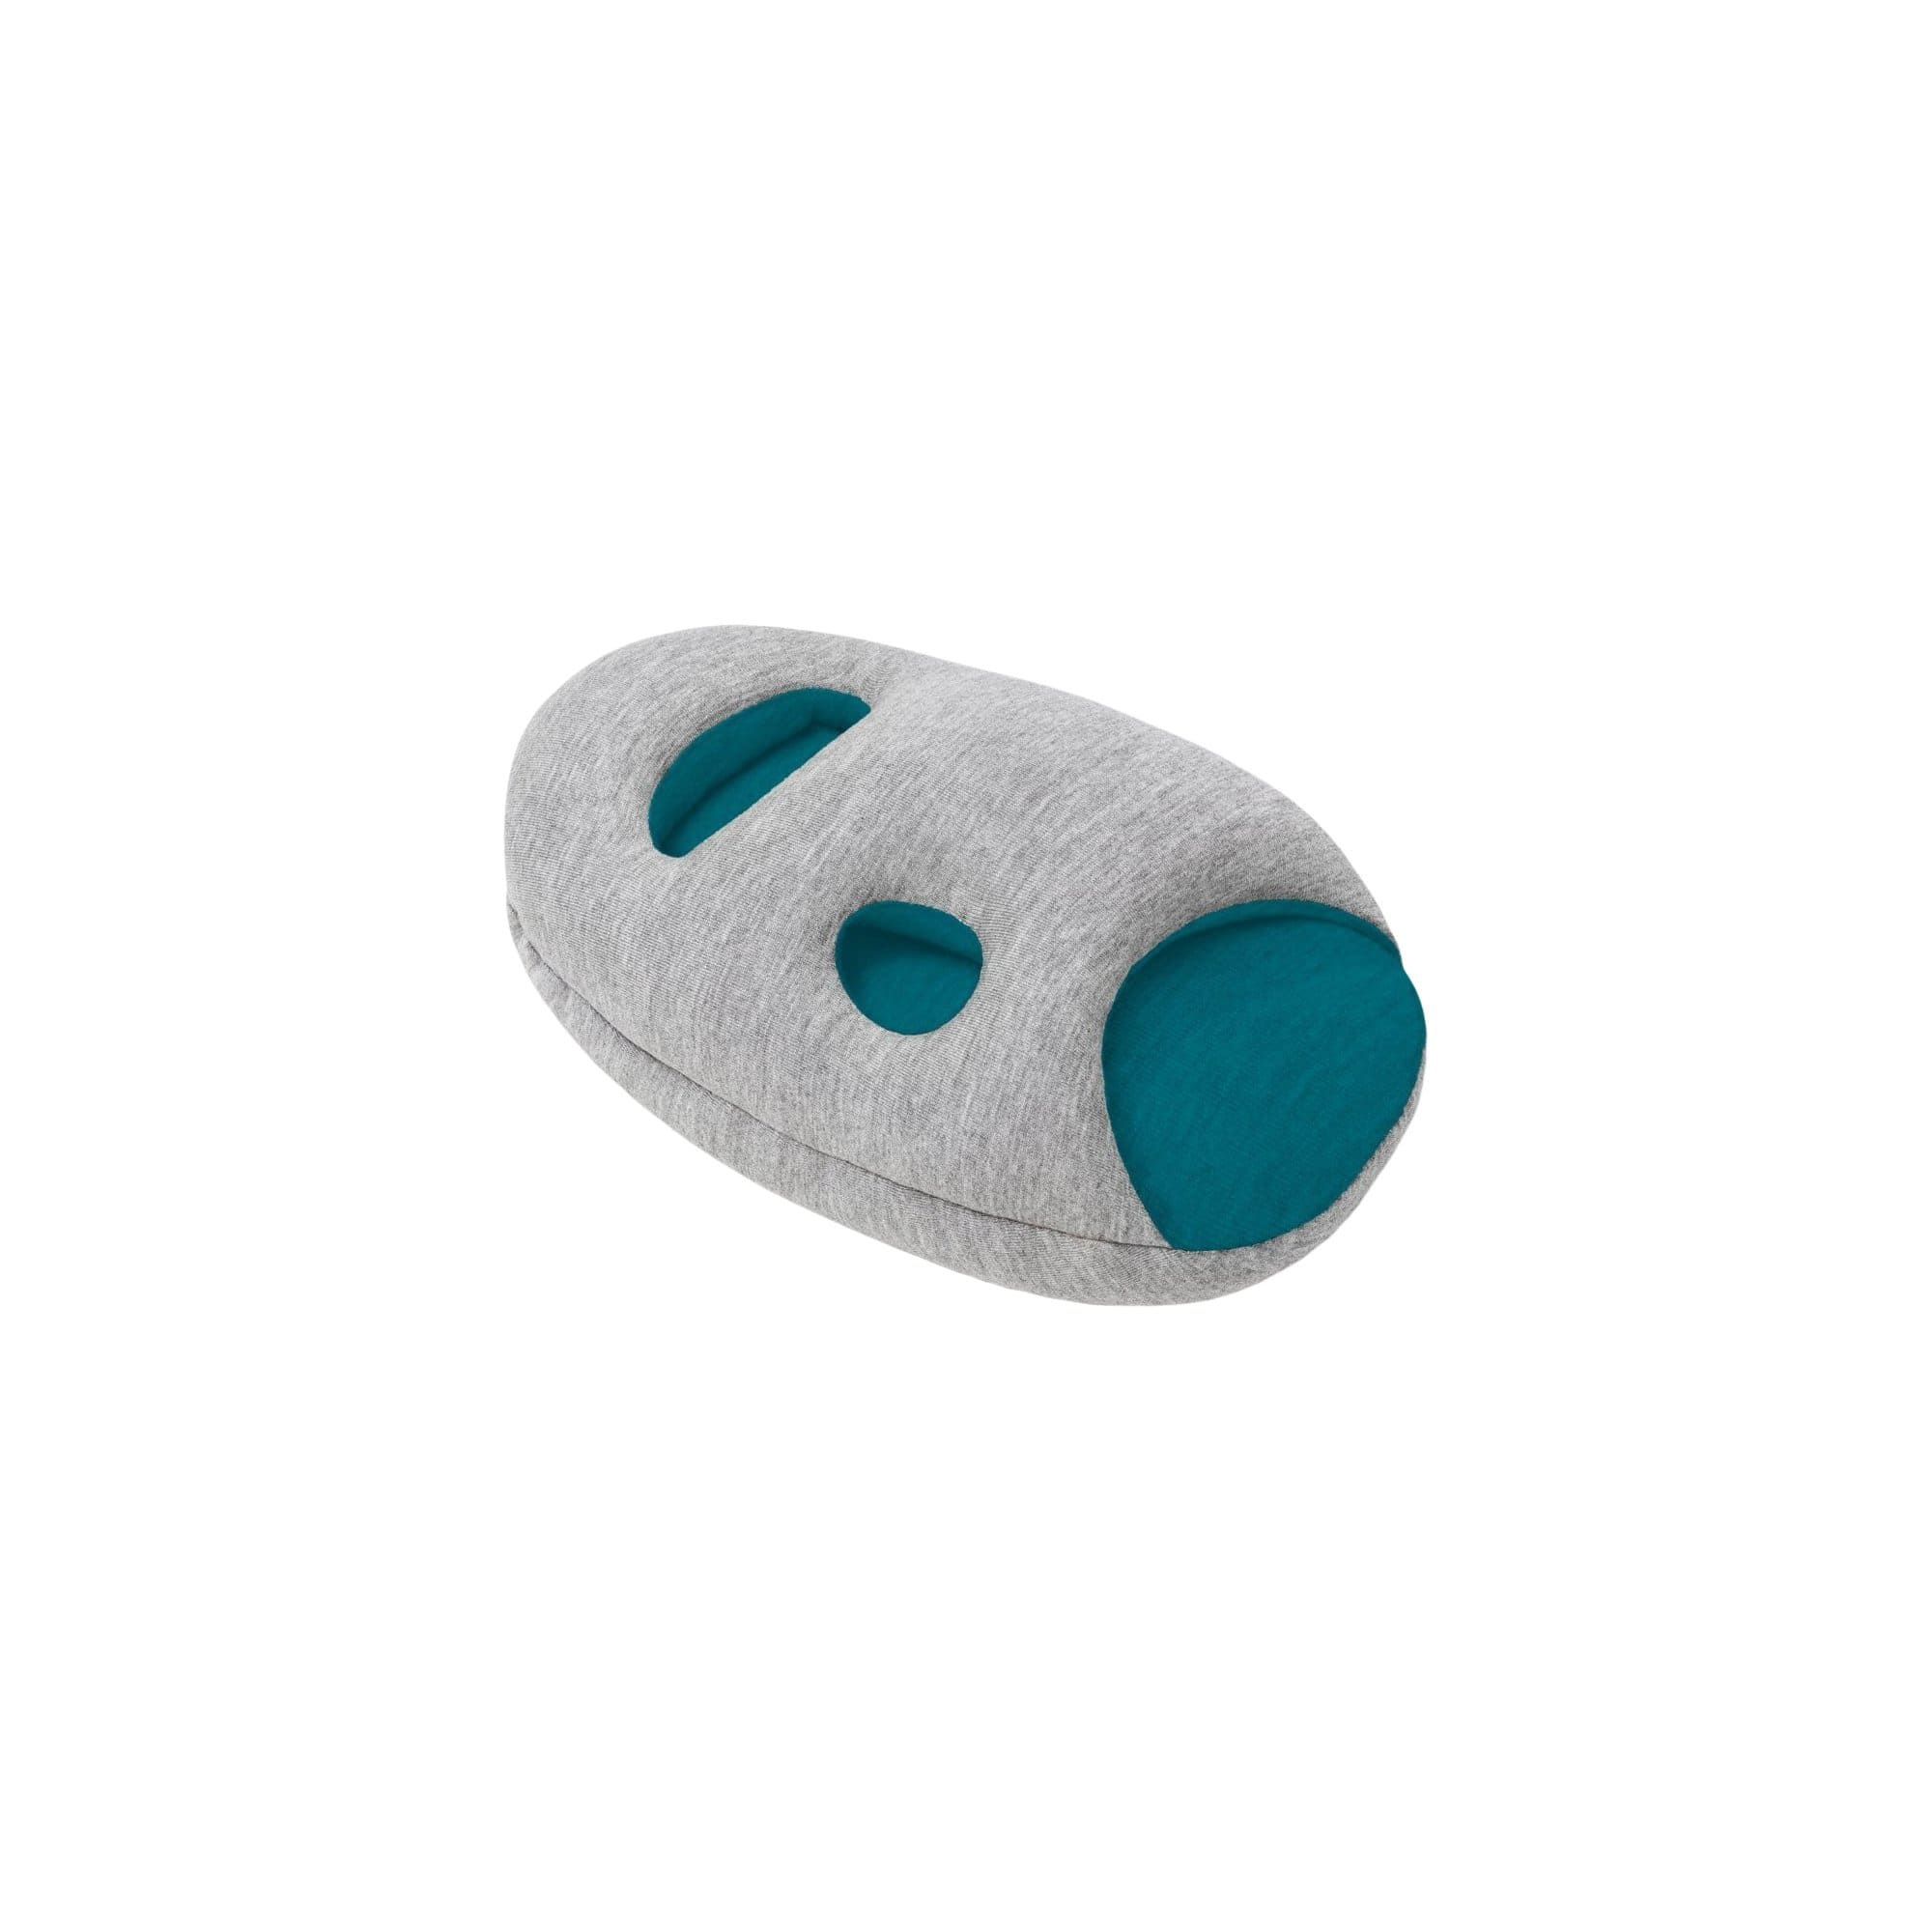 OSTRICHPILLOW Mini Handy Pillow